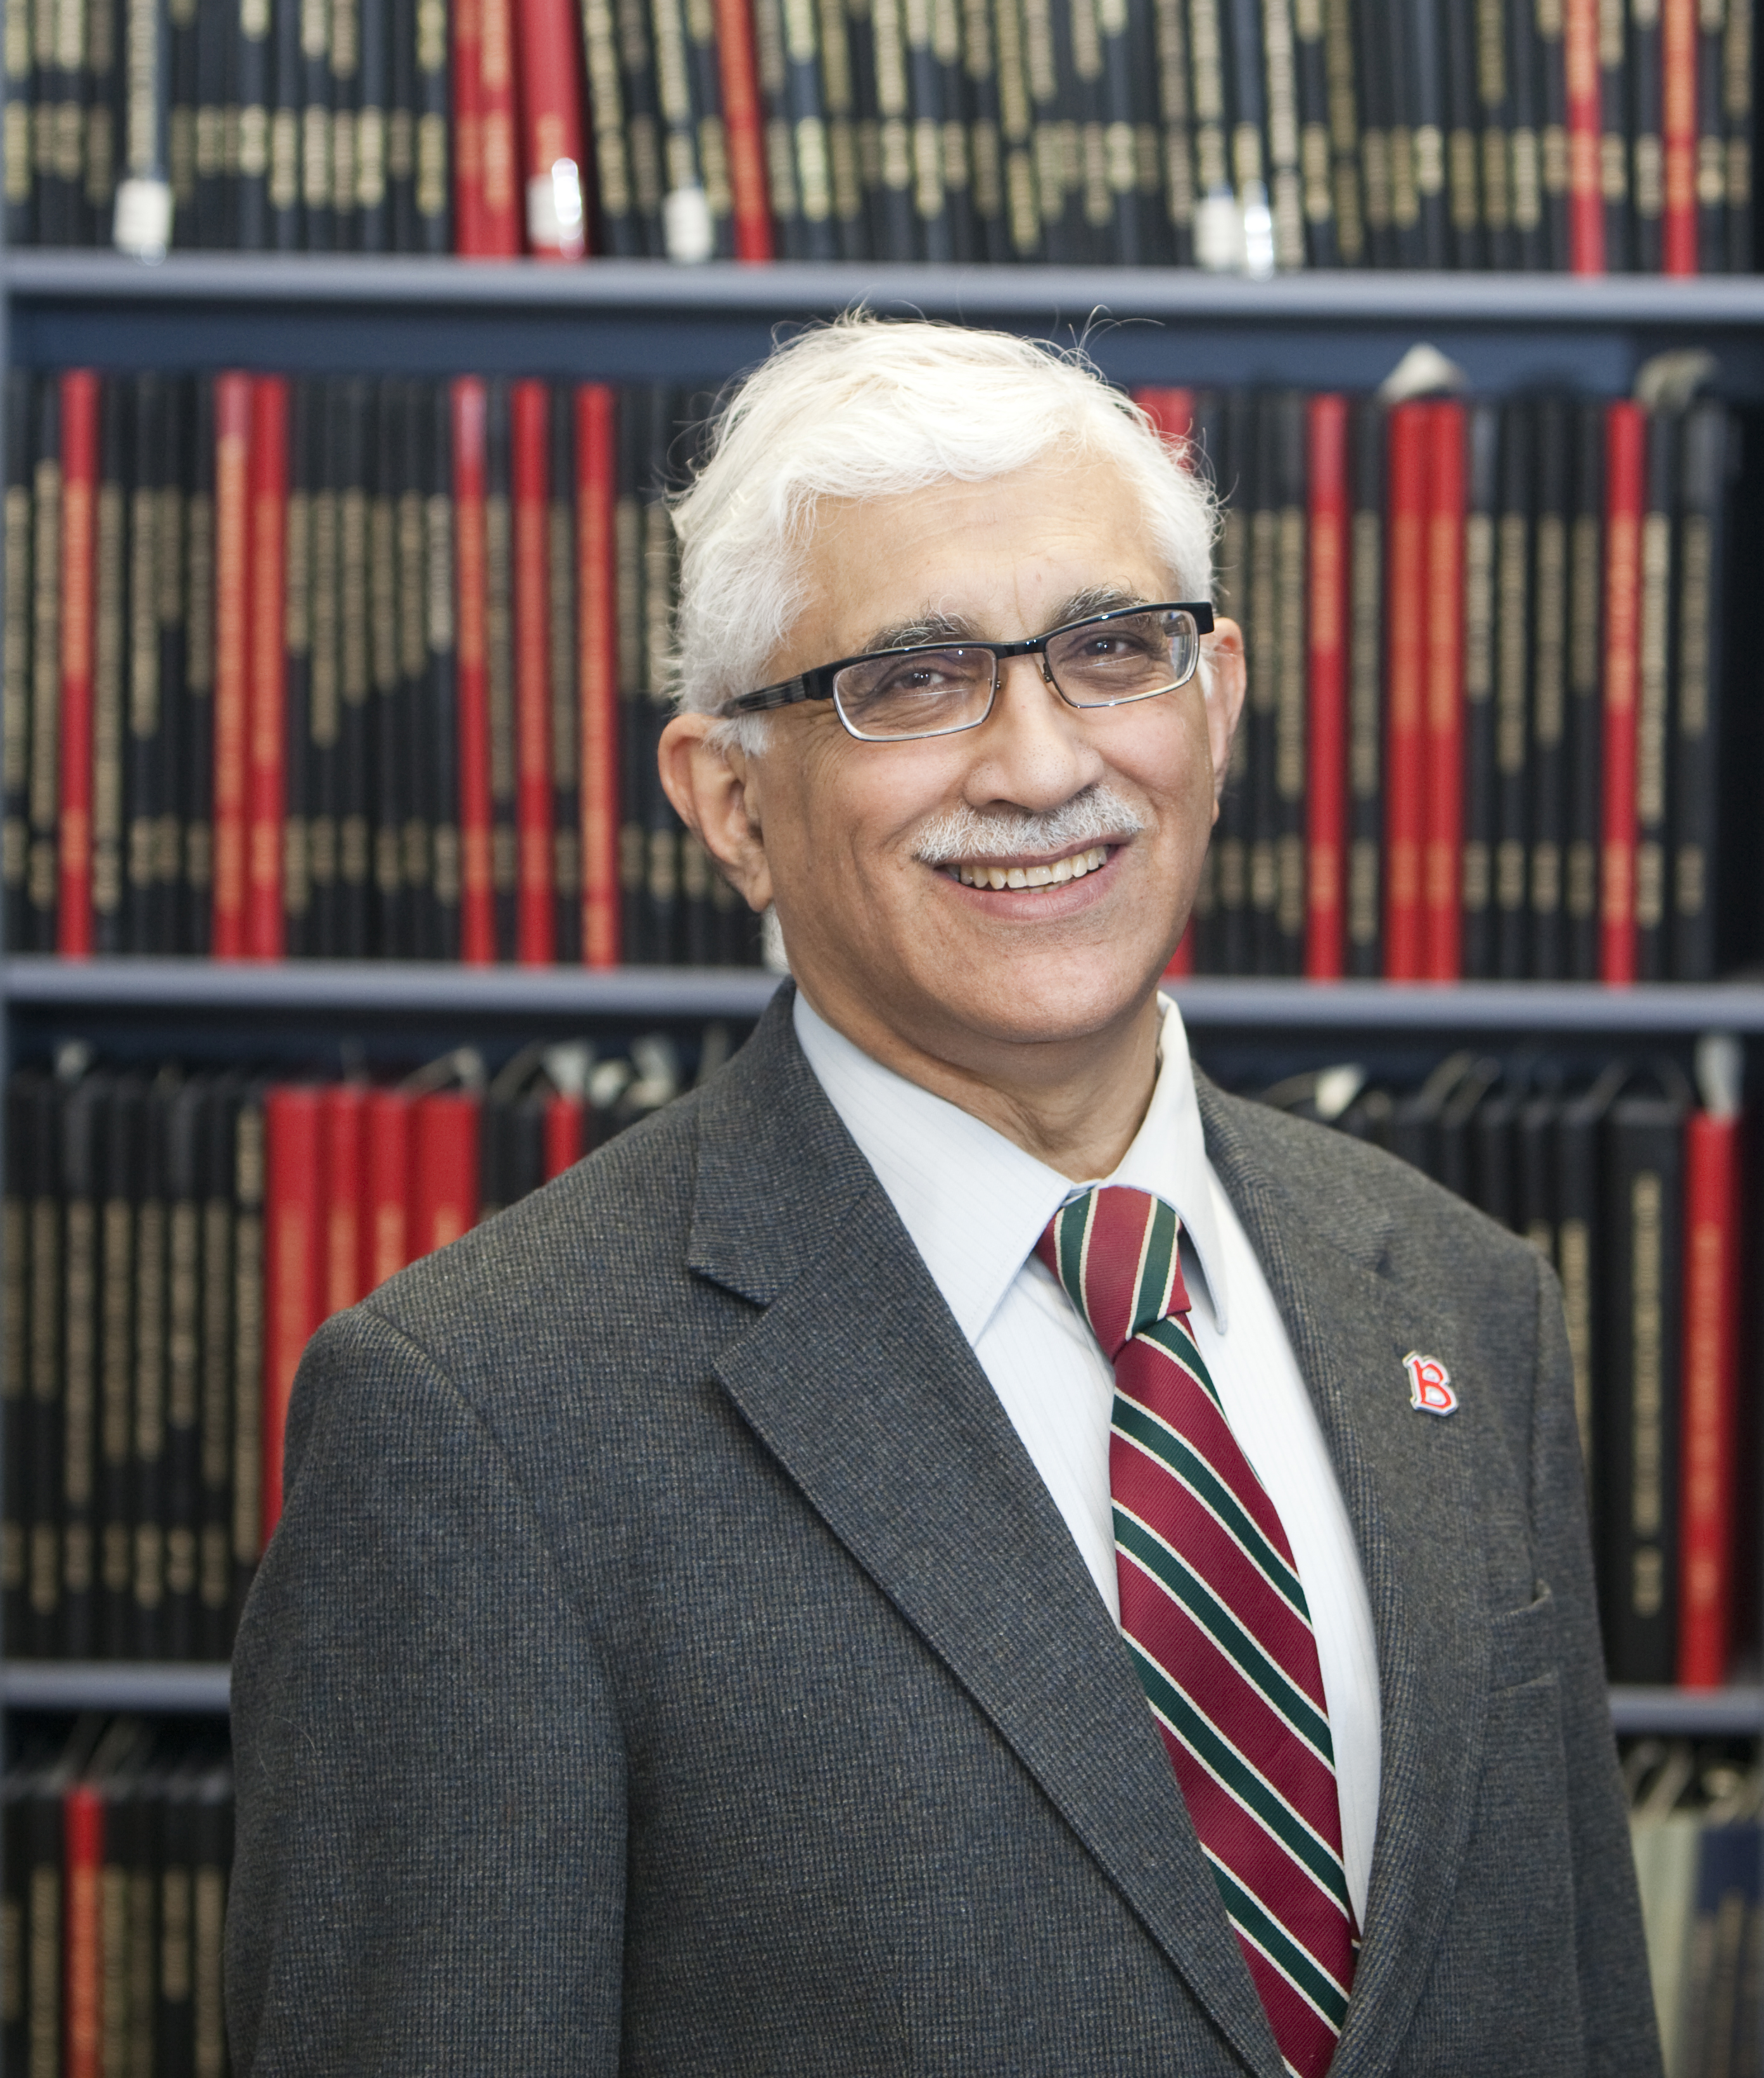 Sunil Chand, Ph.D., professor and director of the Ed.D. program in Higher Education and Organizational Change